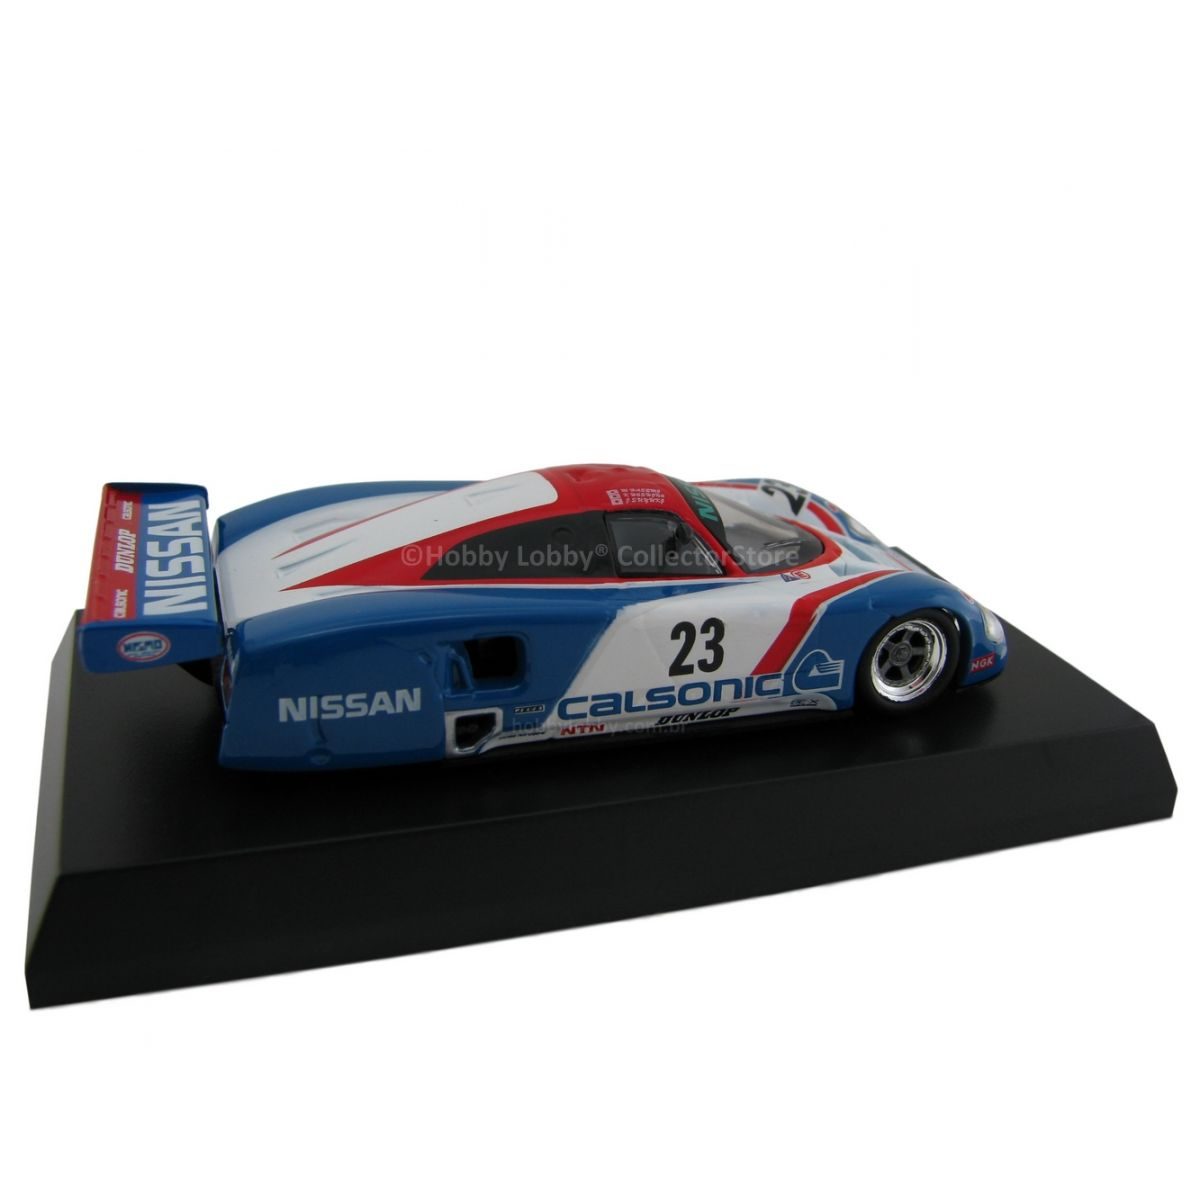 Kyosho - Nissan Racing Car - Nissan R89C  - Hobby Lobby CollectorStore